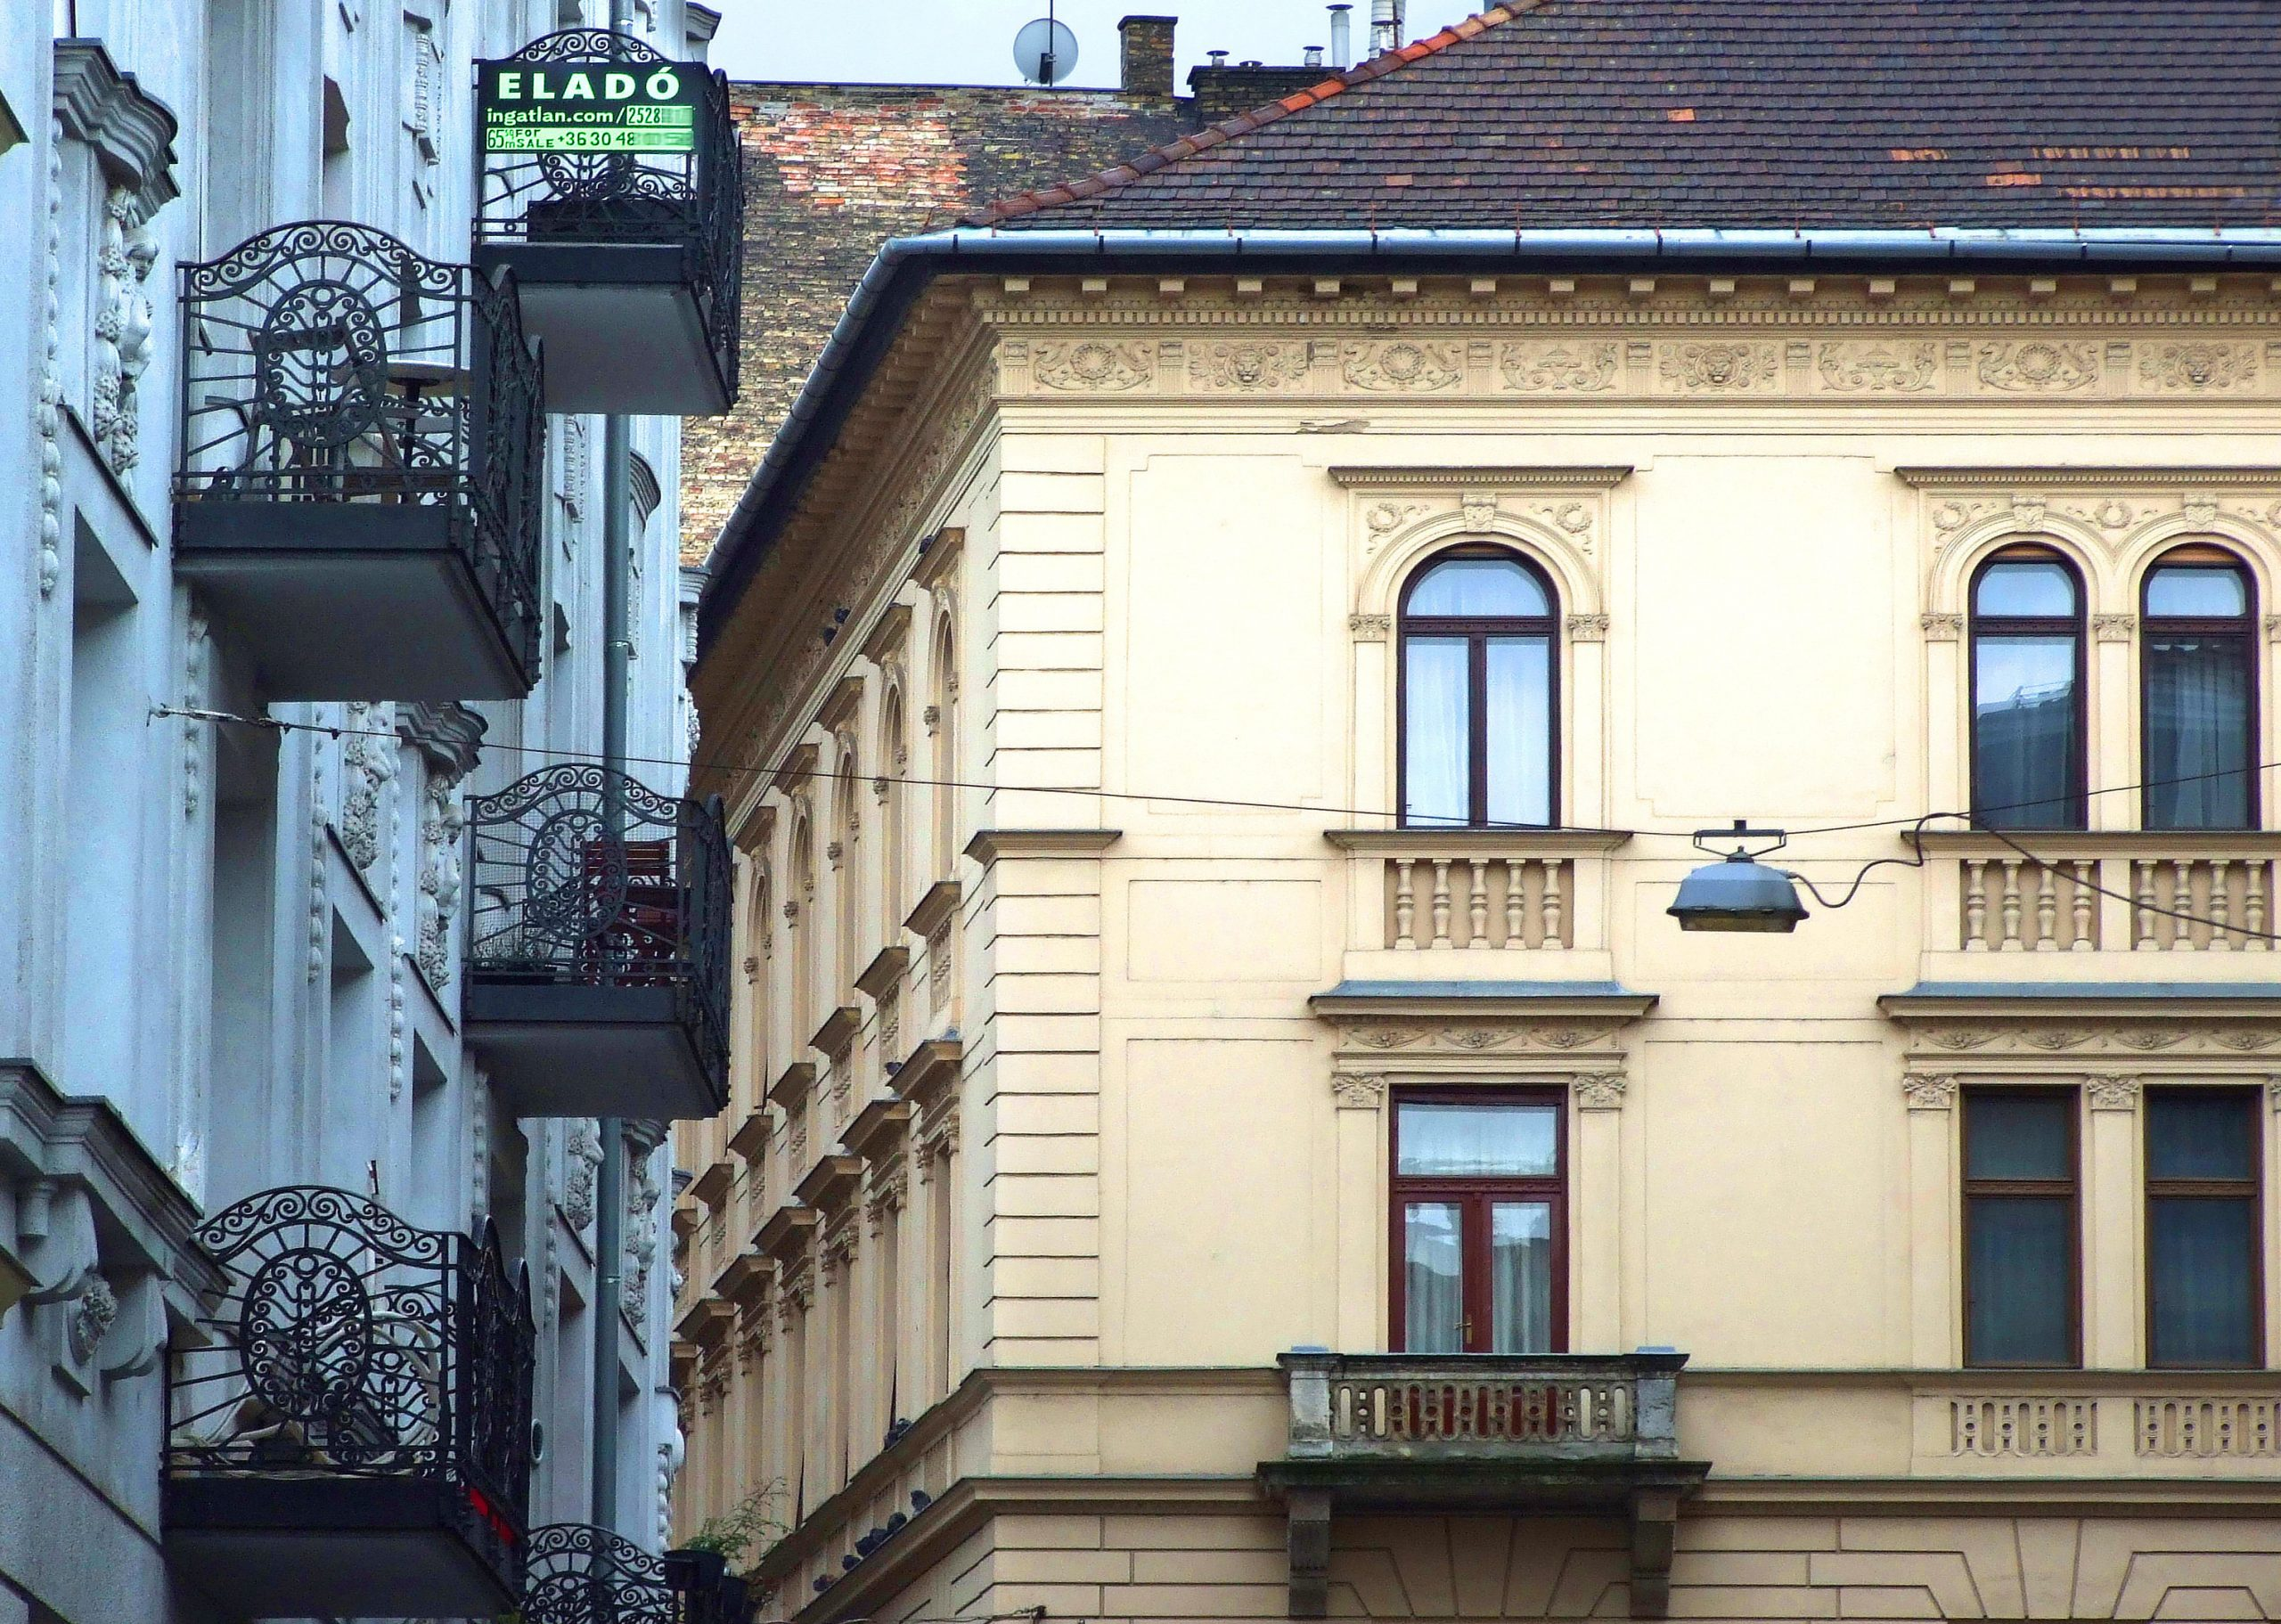 Average Square Meter Prices in Budapest Show Drastic Surge